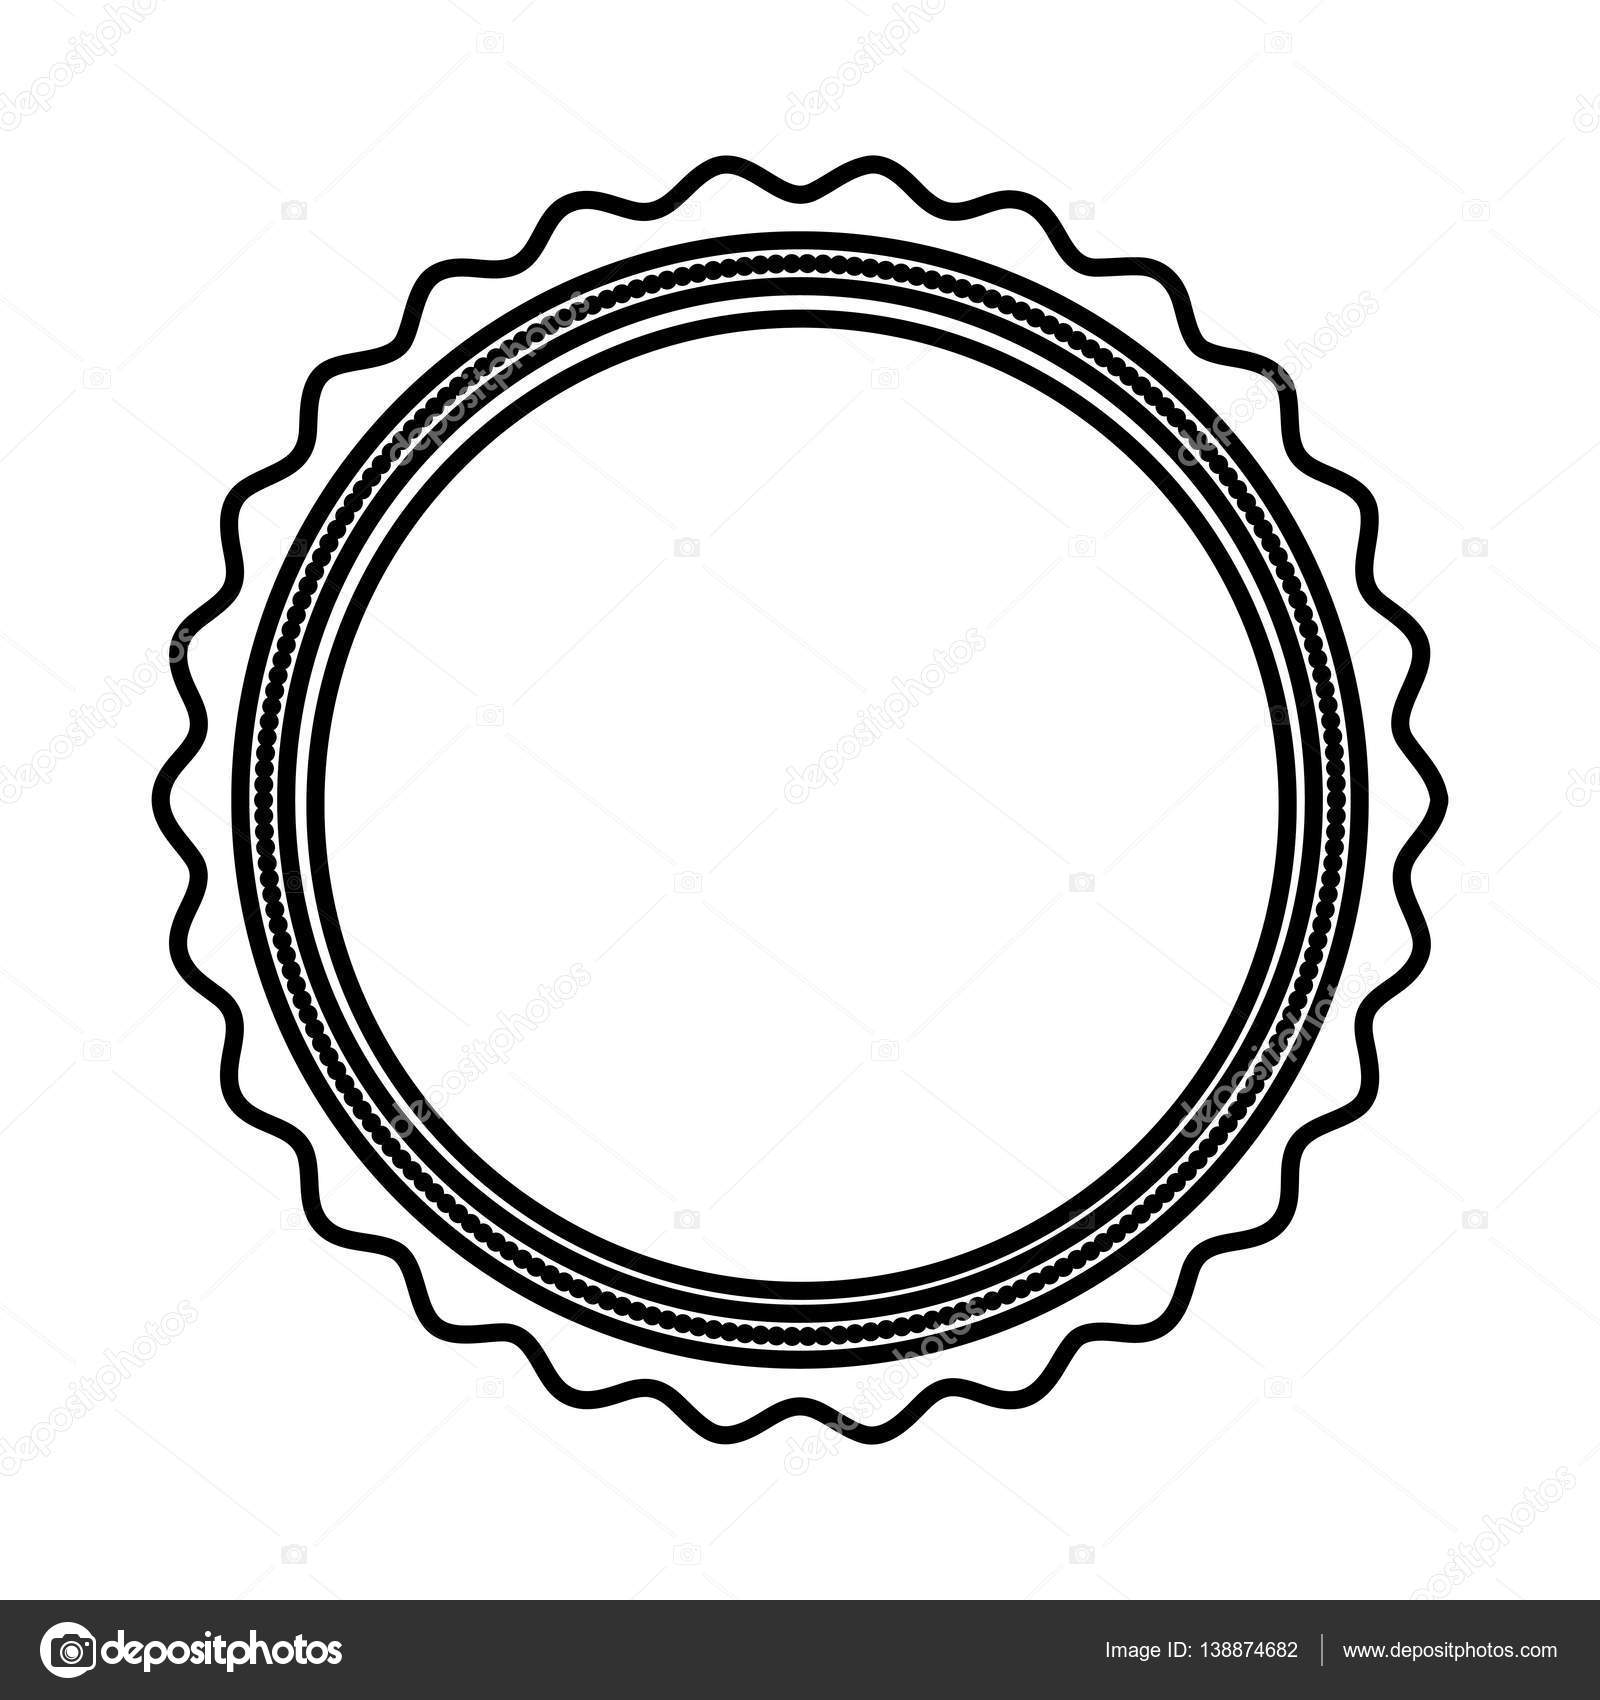 hight resolution of 1600x1700 stamp clipart circle stamp